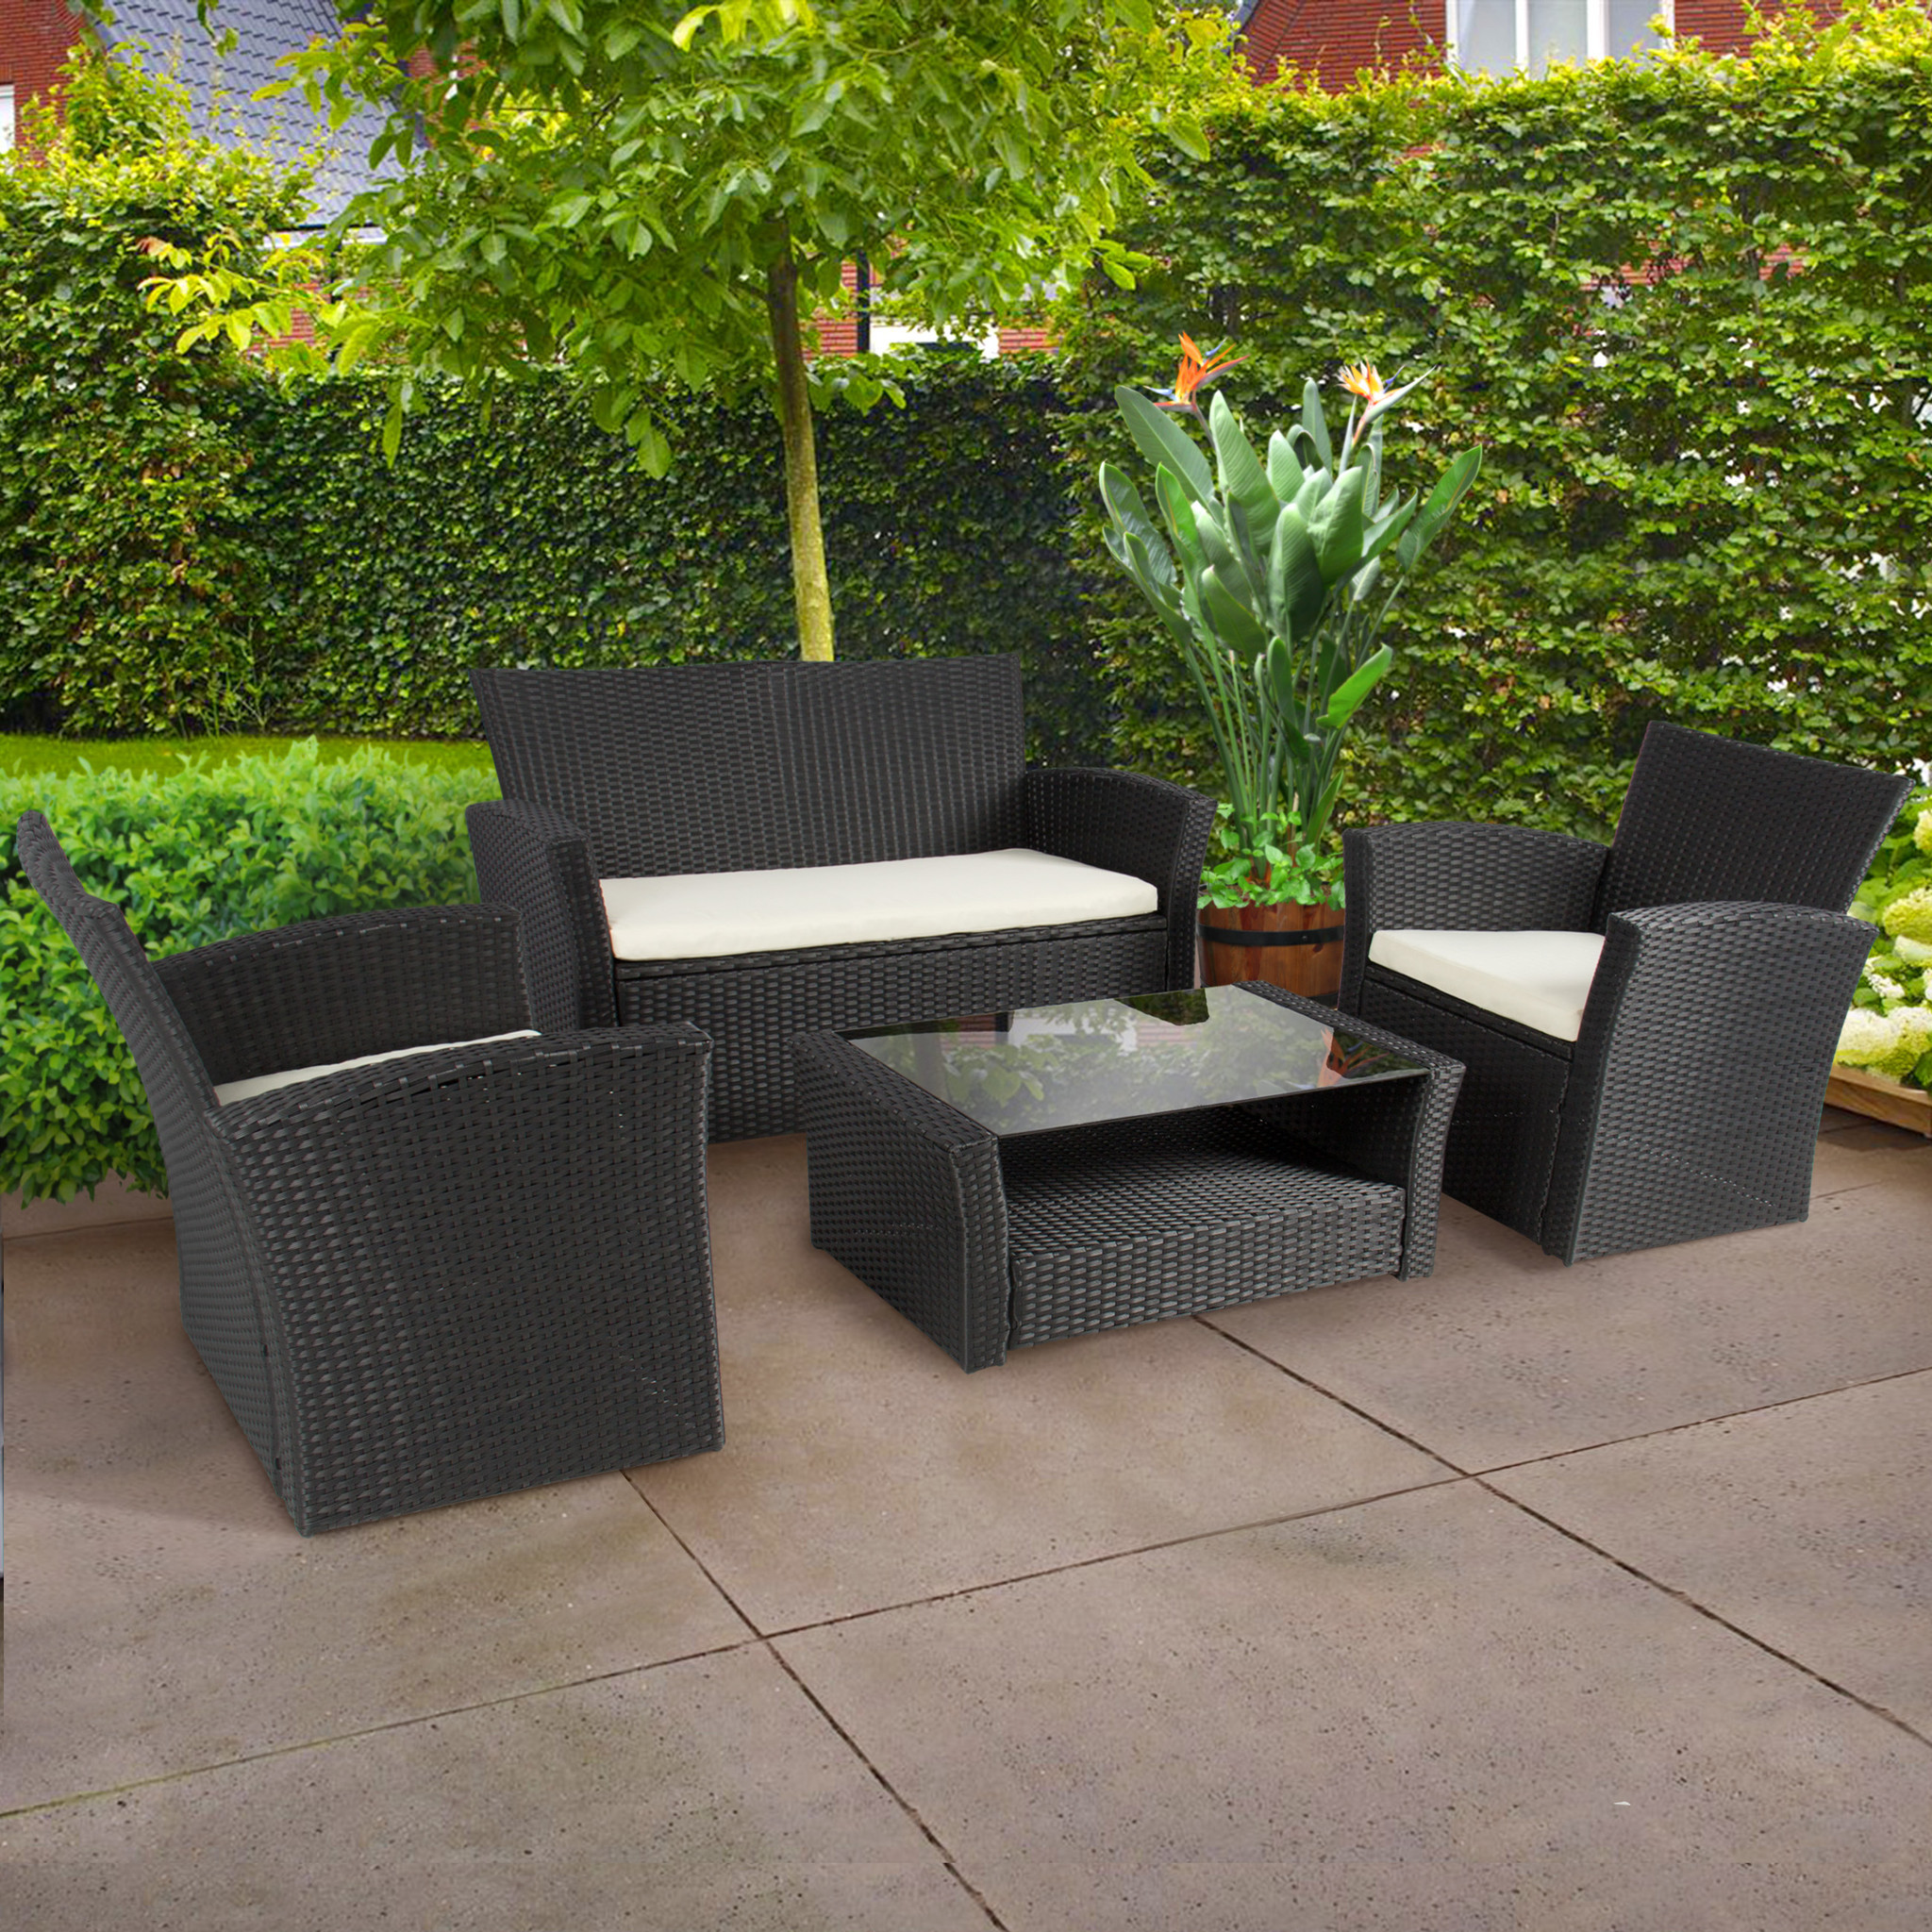 How To Select The Best Quality Patio Furniture For Your Home Rattan And Wicker Furniture